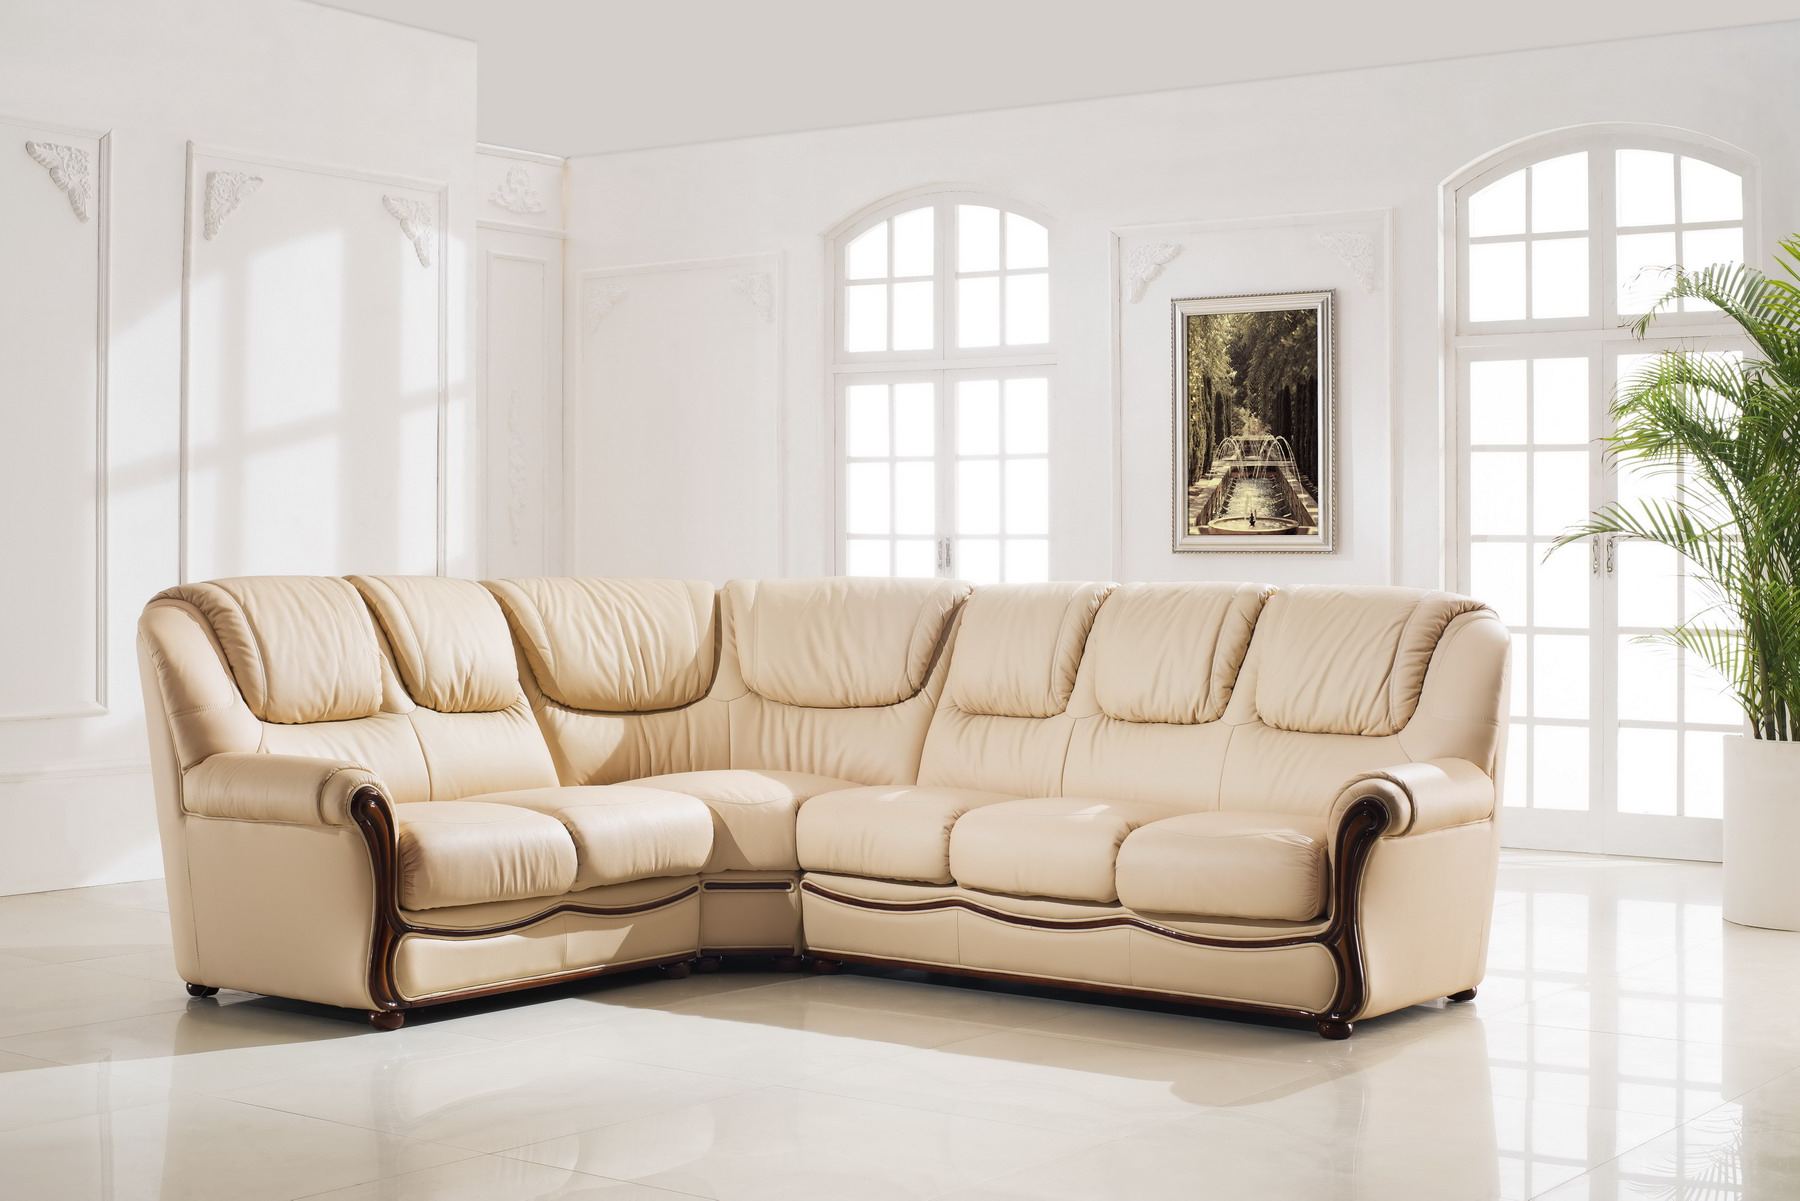 [%Esf 102 Top Grain Italian Leather Sectional W Bed With 2017 Matilda 100% Top Grain Leather Chaise Sectional Sofas|Matilda 100% Top Grain Leather Chaise Sectional Sofas Regarding Well Liked Esf 102 Top Grain Italian Leather Sectional W Bed|Preferred Matilda 100% Top Grain Leather Chaise Sectional Sofas Throughout Esf 102 Top Grain Italian Leather Sectional W Bed|2017 Esf 102 Top Grain Italian Leather Sectional W Bed With Regard To Matilda 100% Top Grain Leather Chaise Sectional Sofas%] (View 6 of 25)